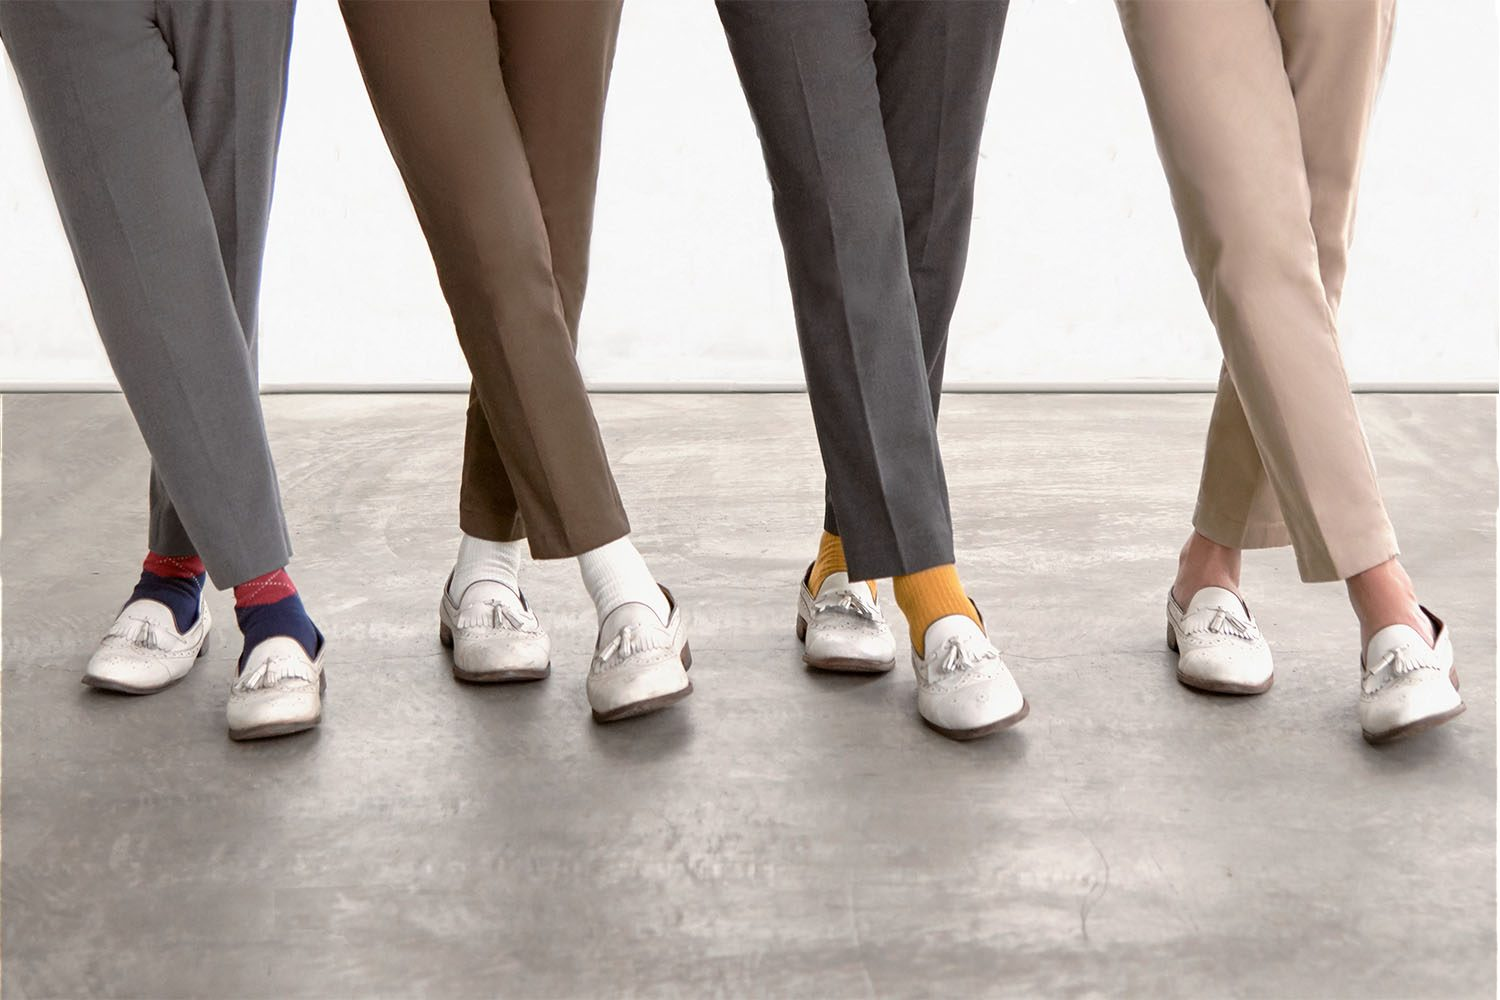 UNIQLO INDONESIA X WHITE SHOES AND THE COUPLES COMPANY 2